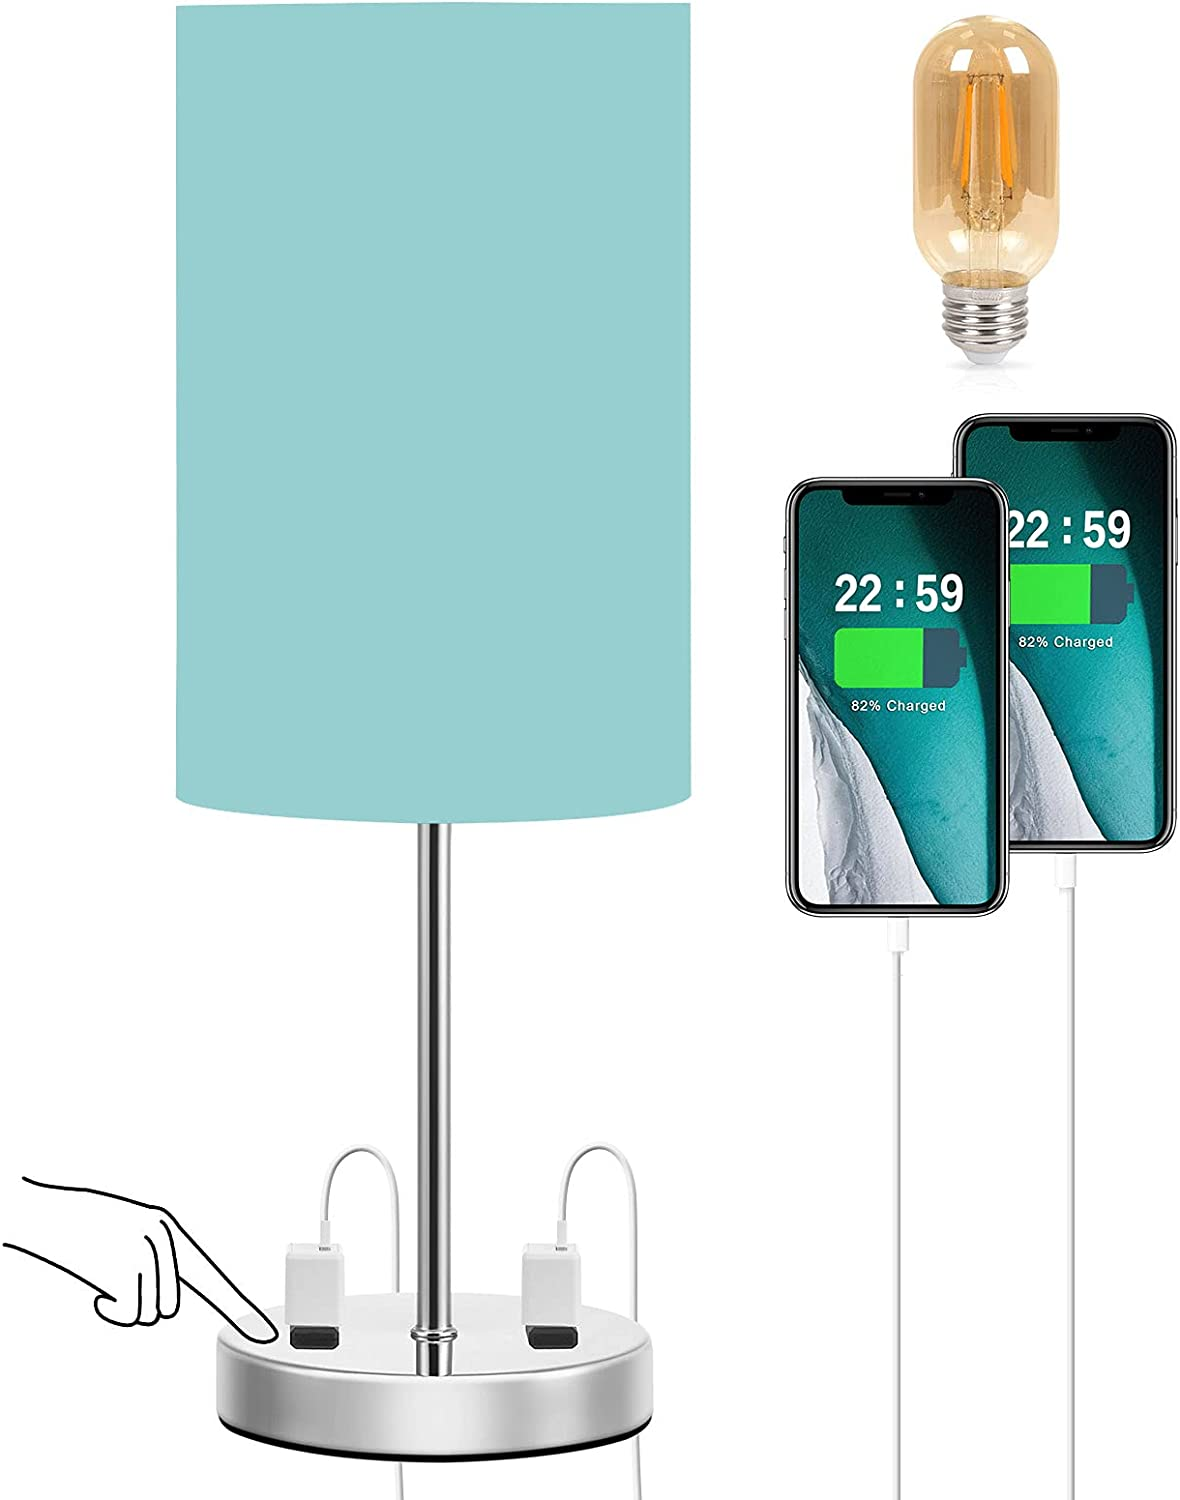 Doowo Touch Table Lamp for Sales of SALE items from new works Bedroom Small In a popularity Way fo 3 Dimmable